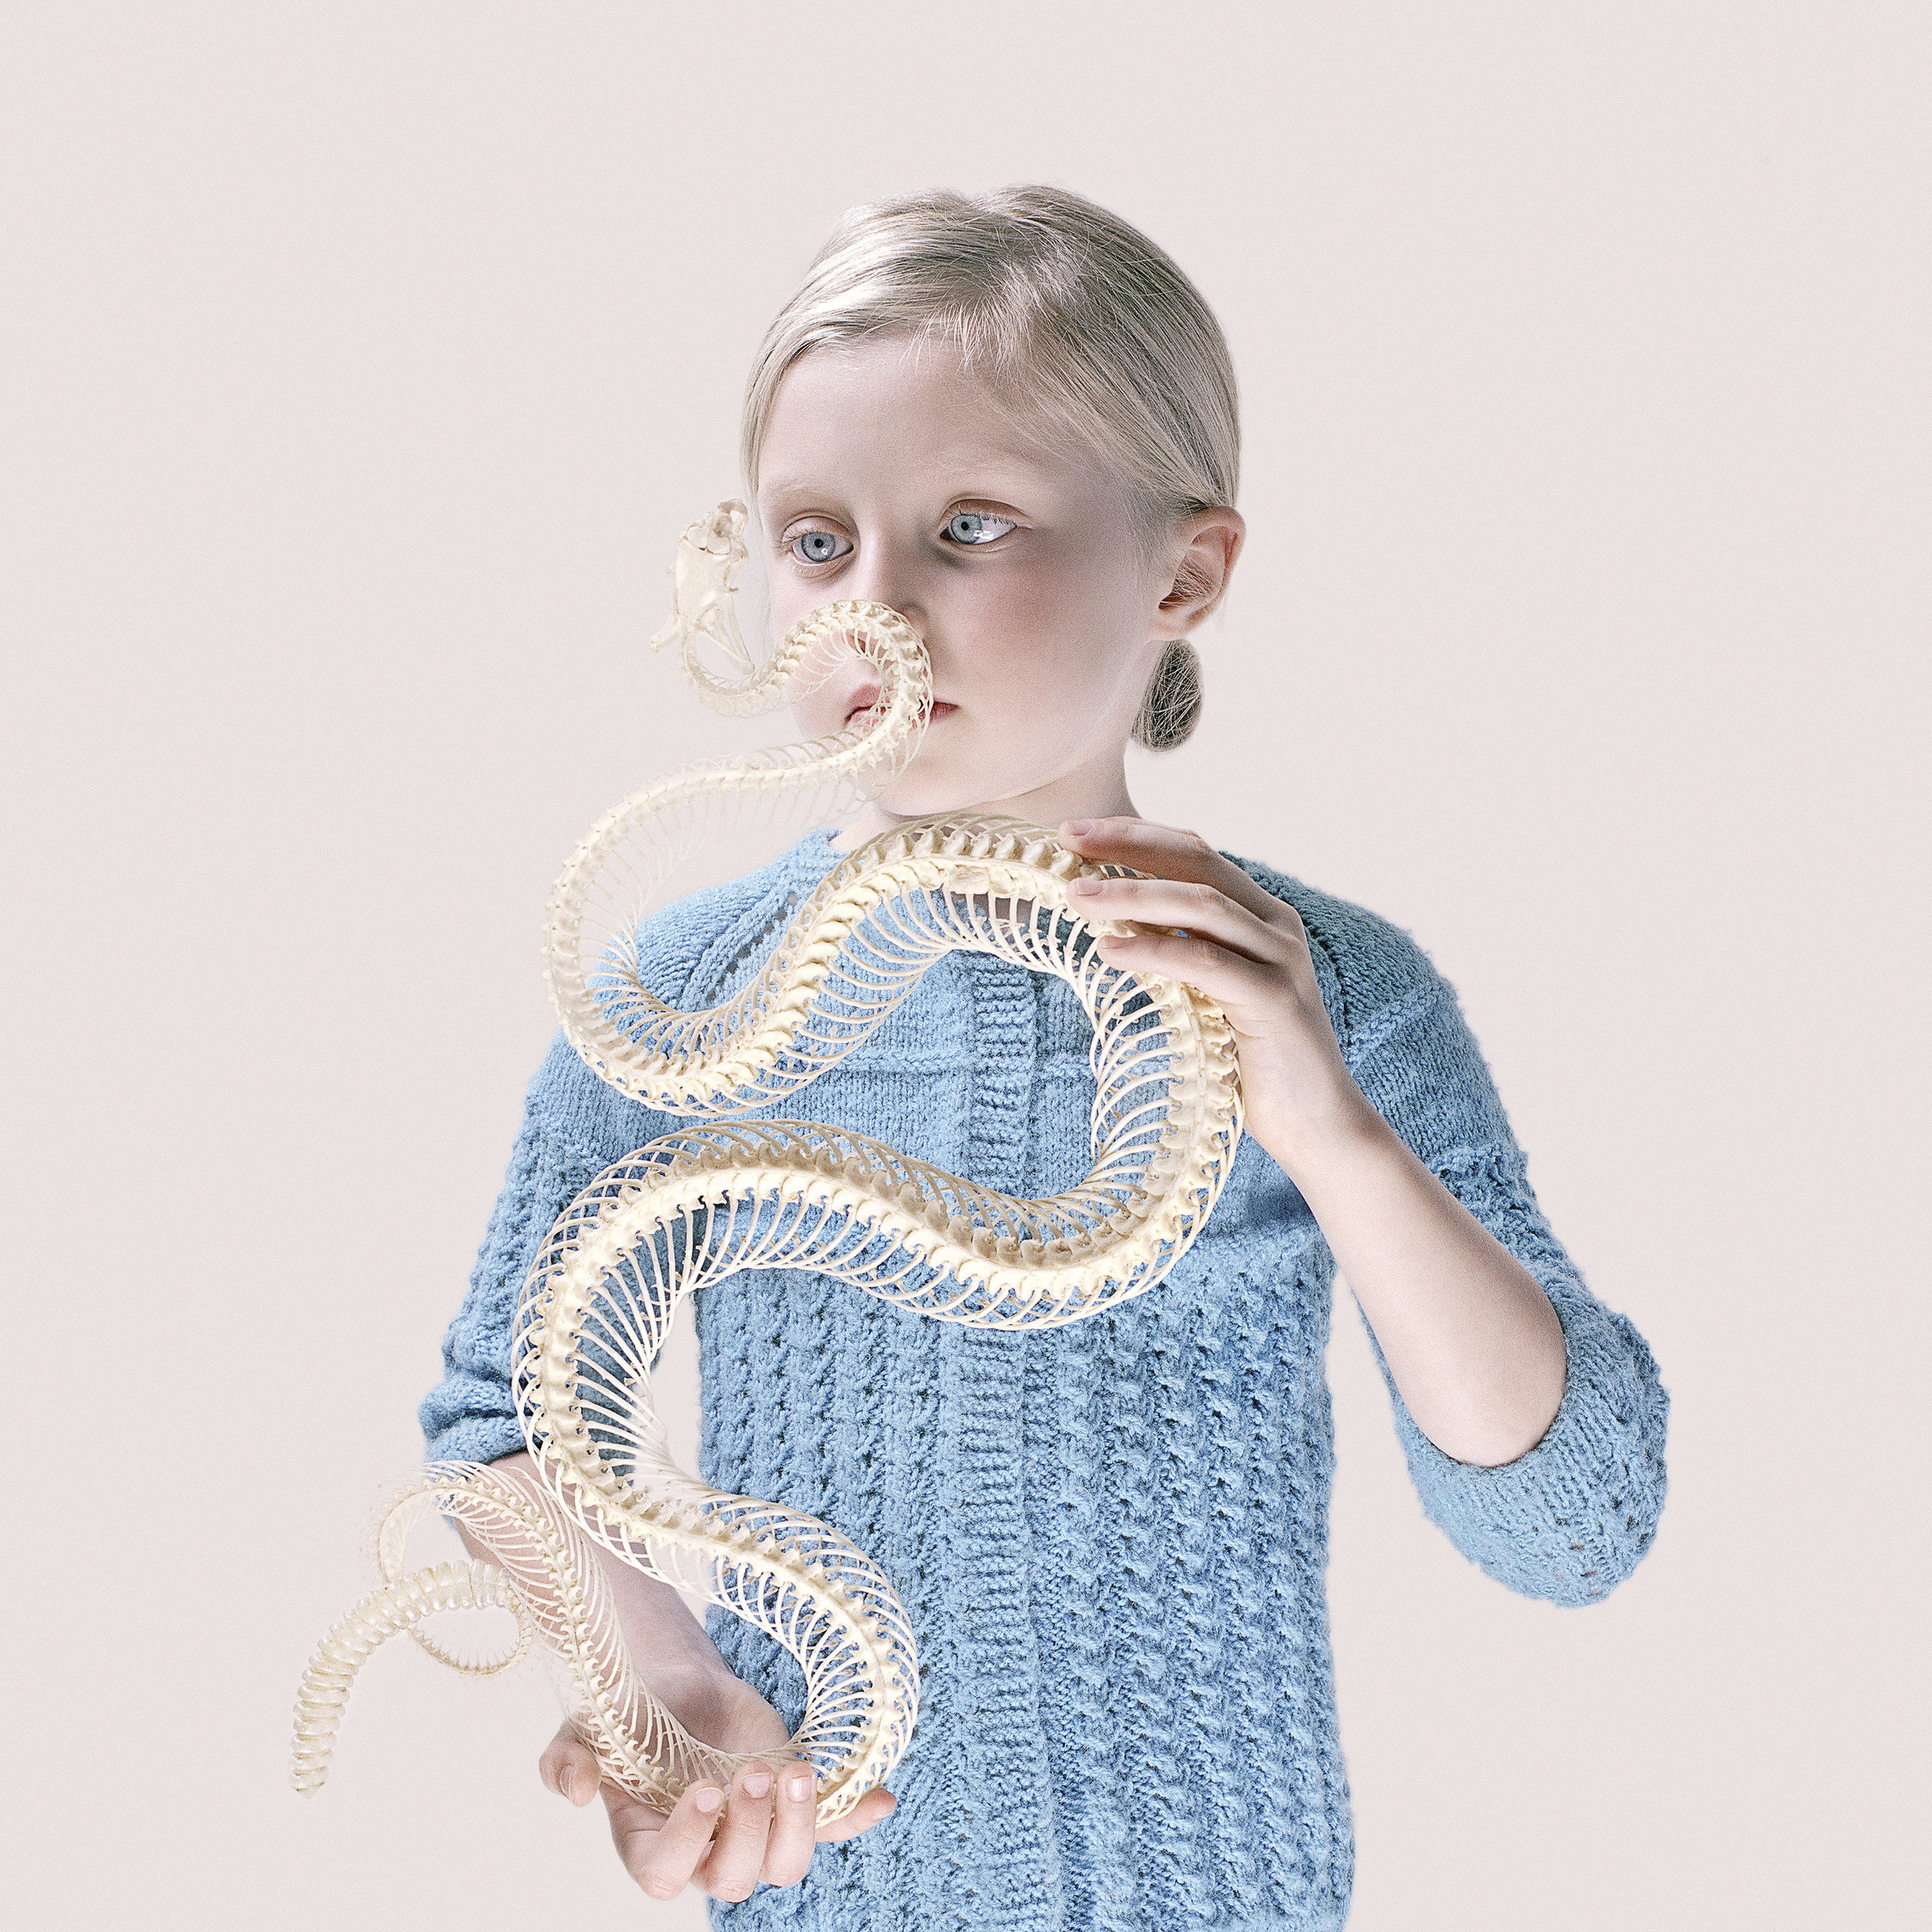 Rattlesnake Blues,  2016 by Petrina Hicks from  The Californian Works  series.